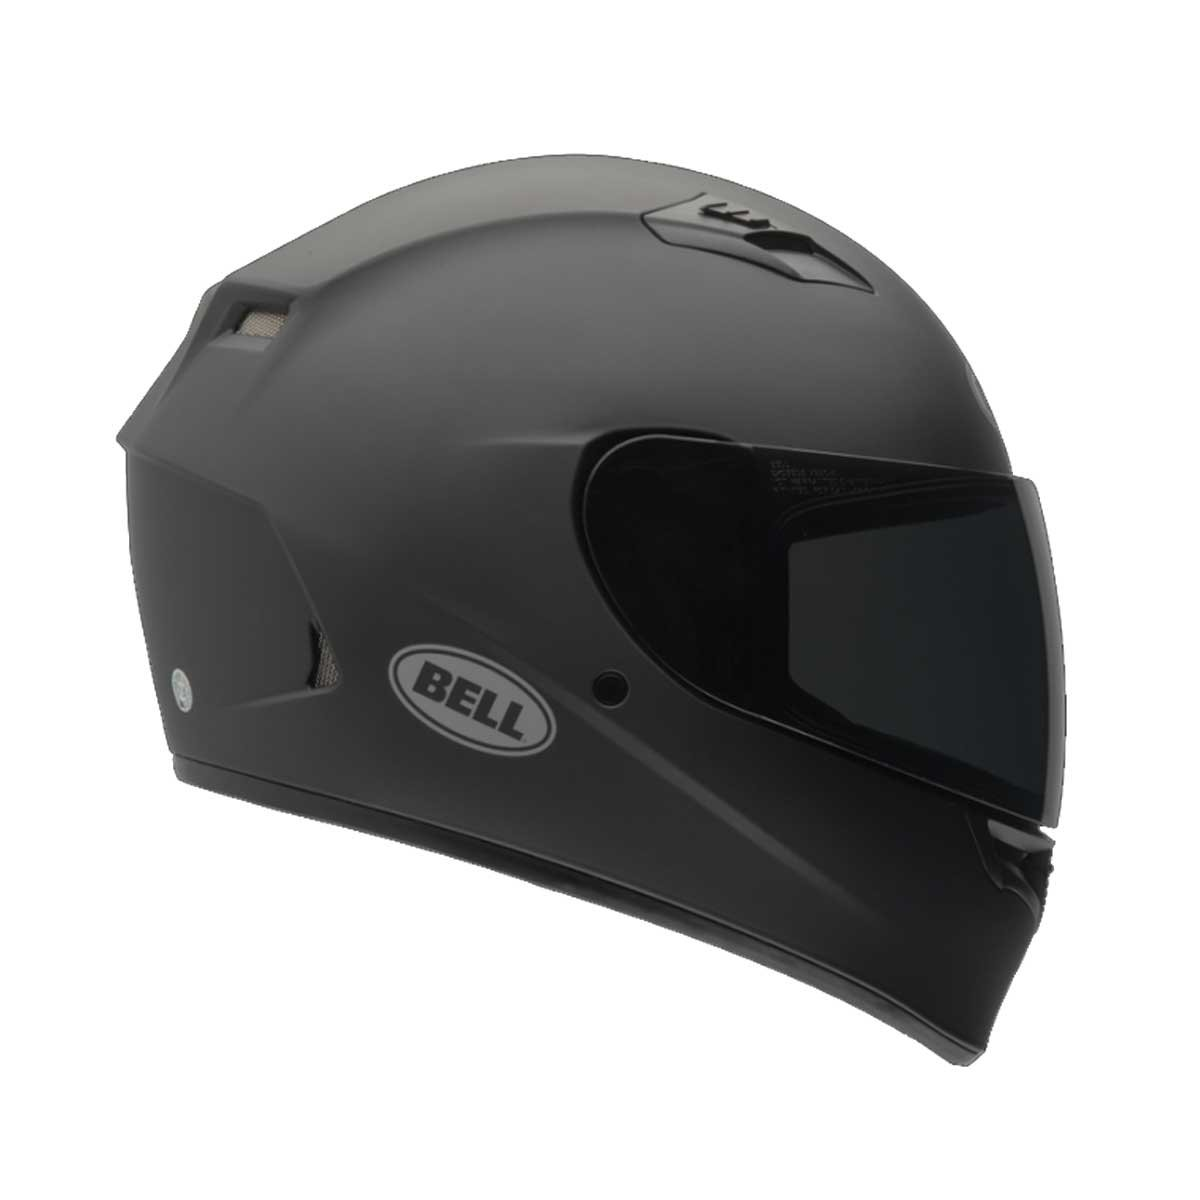 Best Full Face Helmets For Motorcycle All Covering Lids Cyber